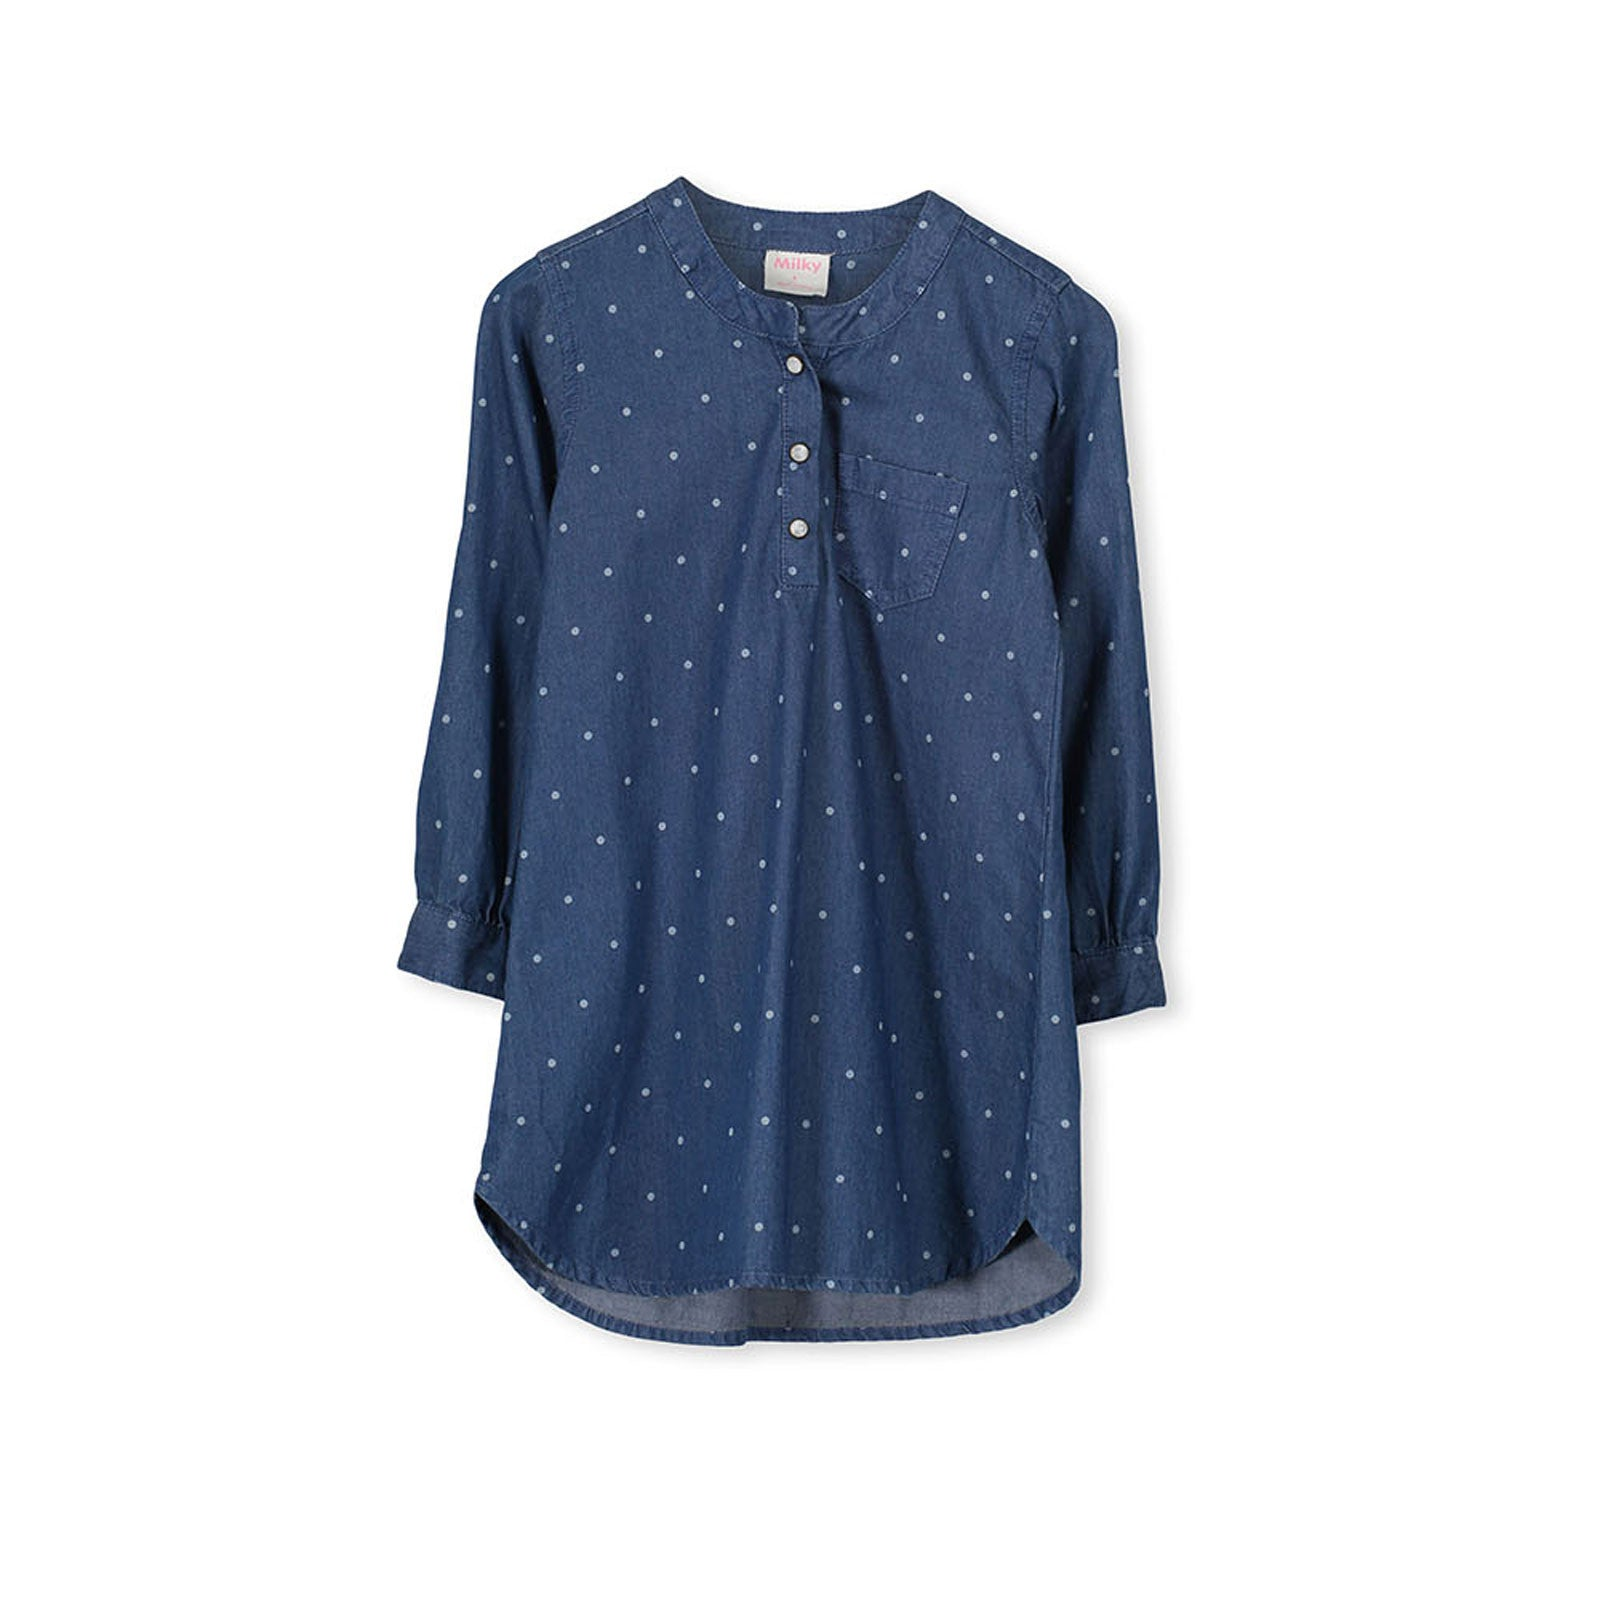 Milky Baby Denim Spot Dress Baby Bootique